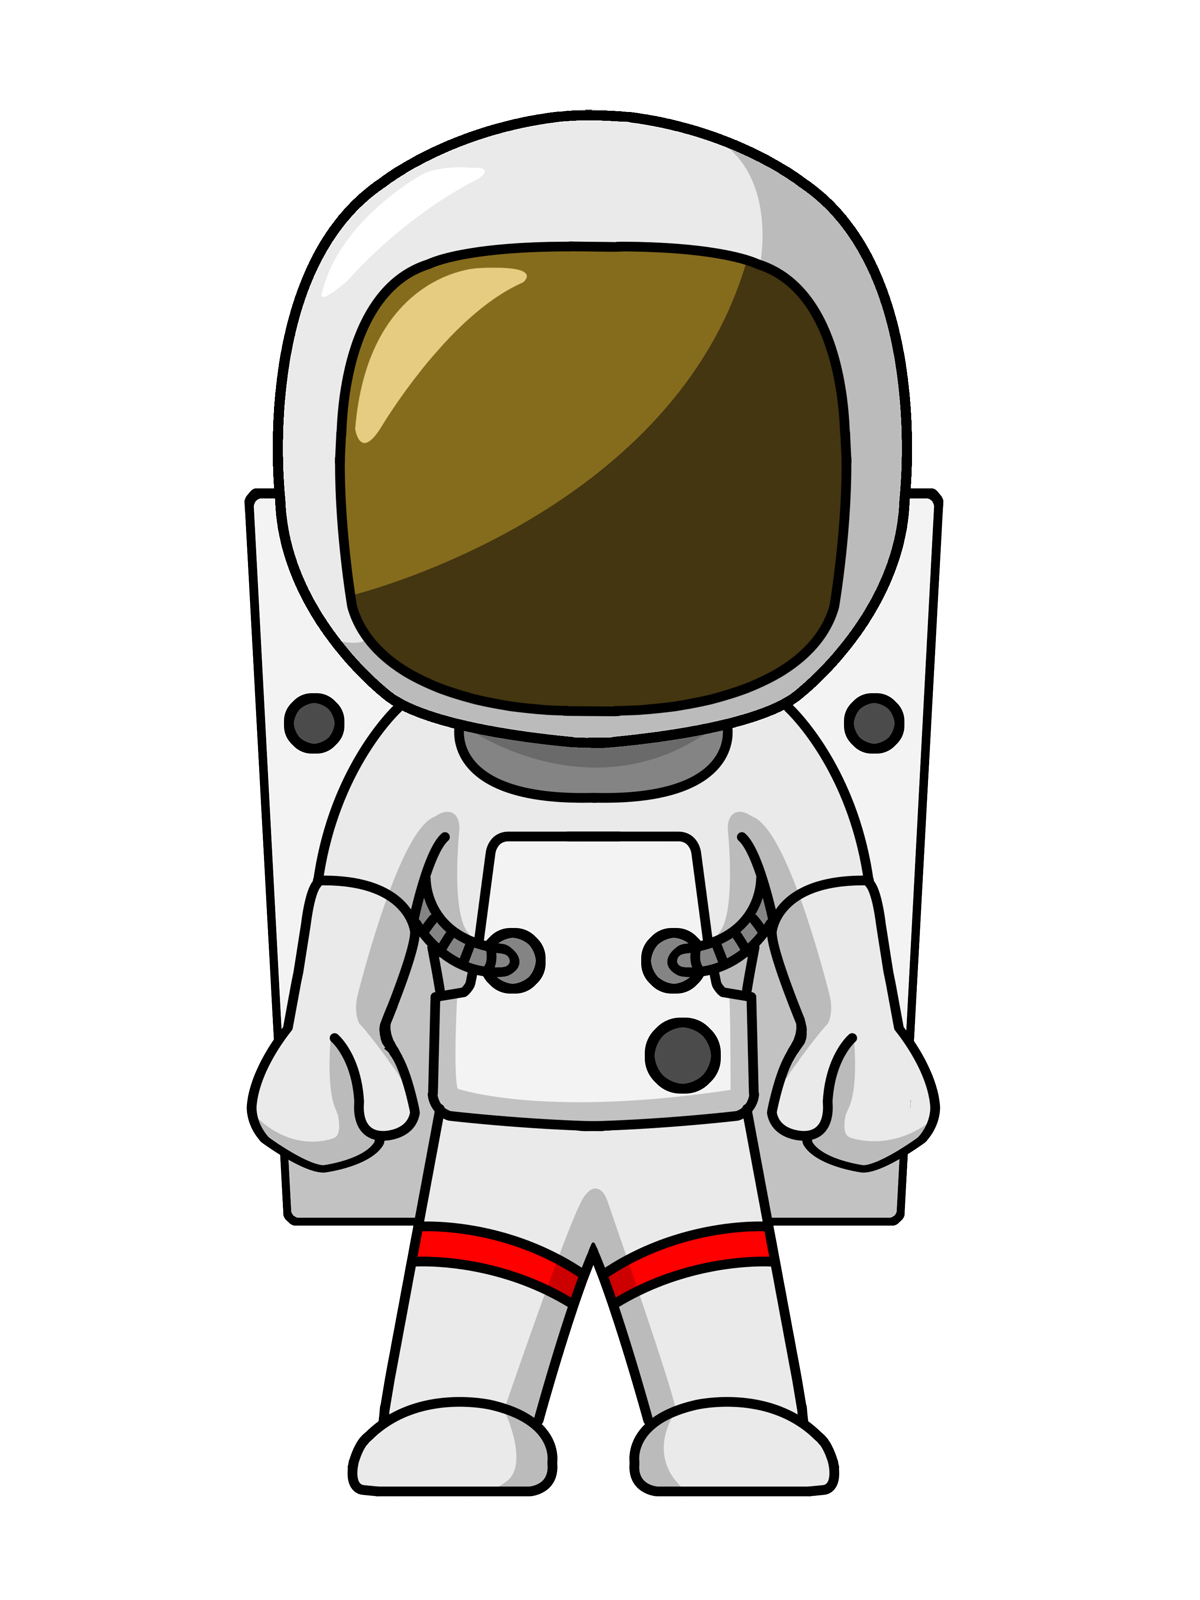 Astronaut singing clipart vector free library Free Astronaut Cliparts, Download Free Clip Art, Free Clip Art on ... vector free library